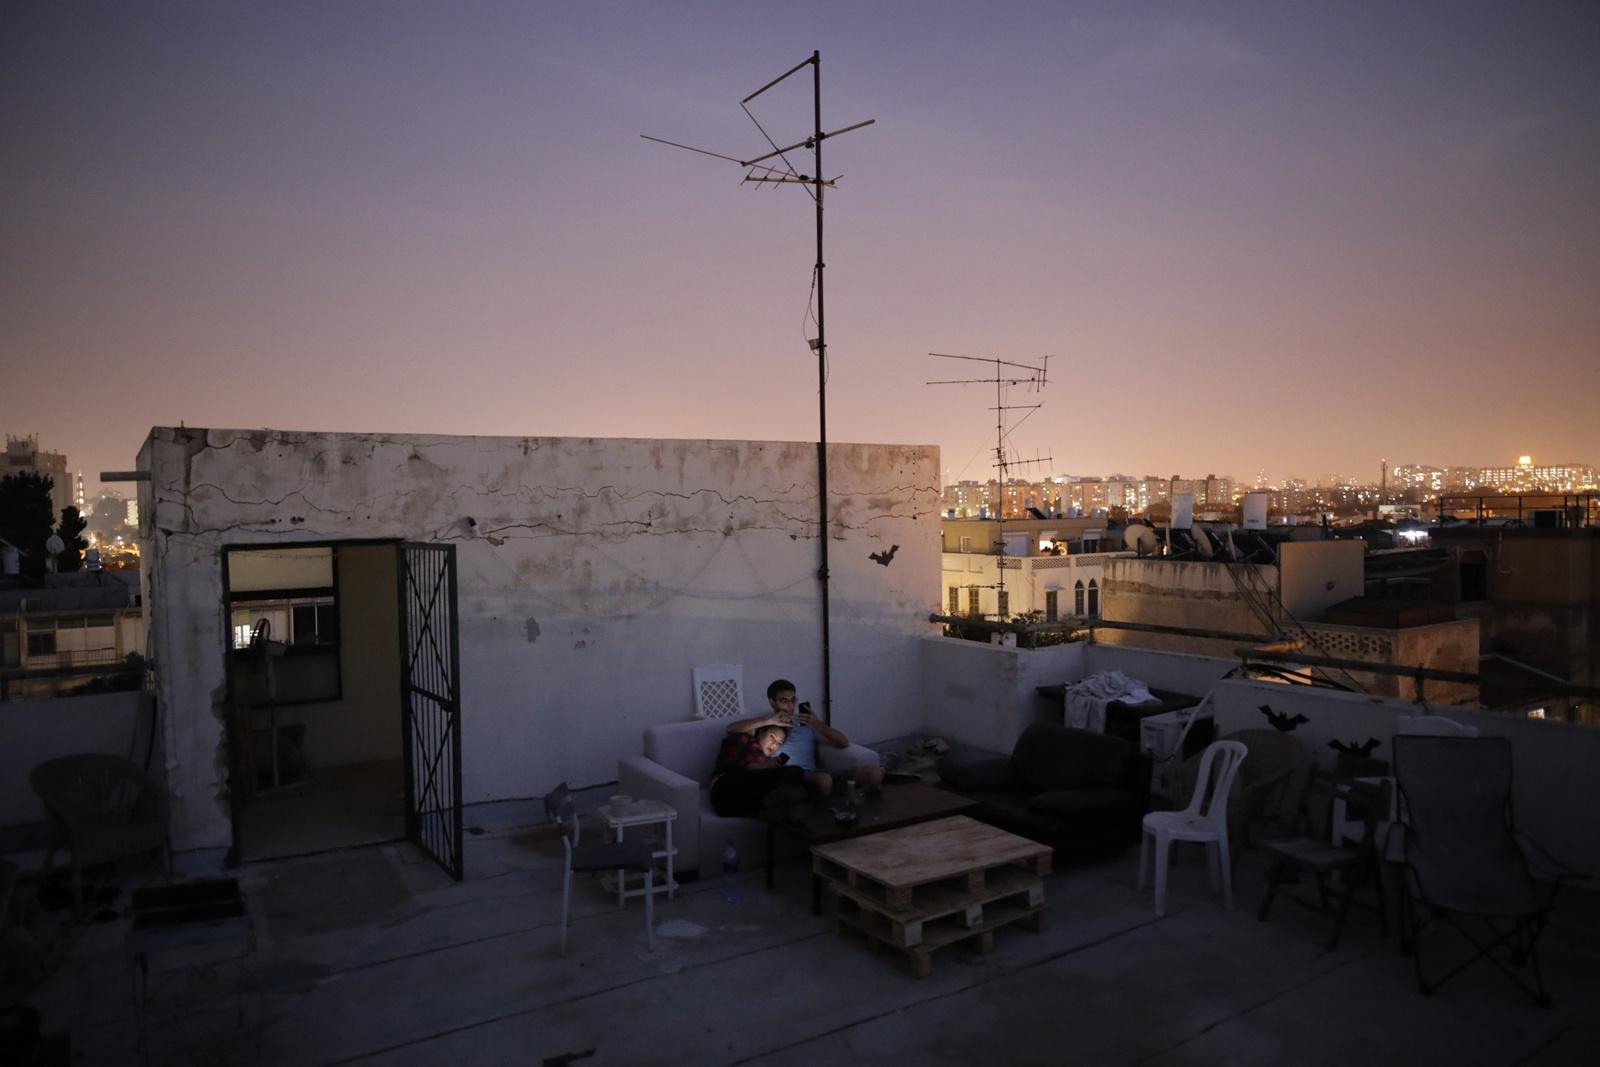 Hana Wimberly, 26, and Emanuel Cohen, 36, spend their evening together on a shared roof of a building in Yafo, Tel Aviv, November 18, 2017, Israel.